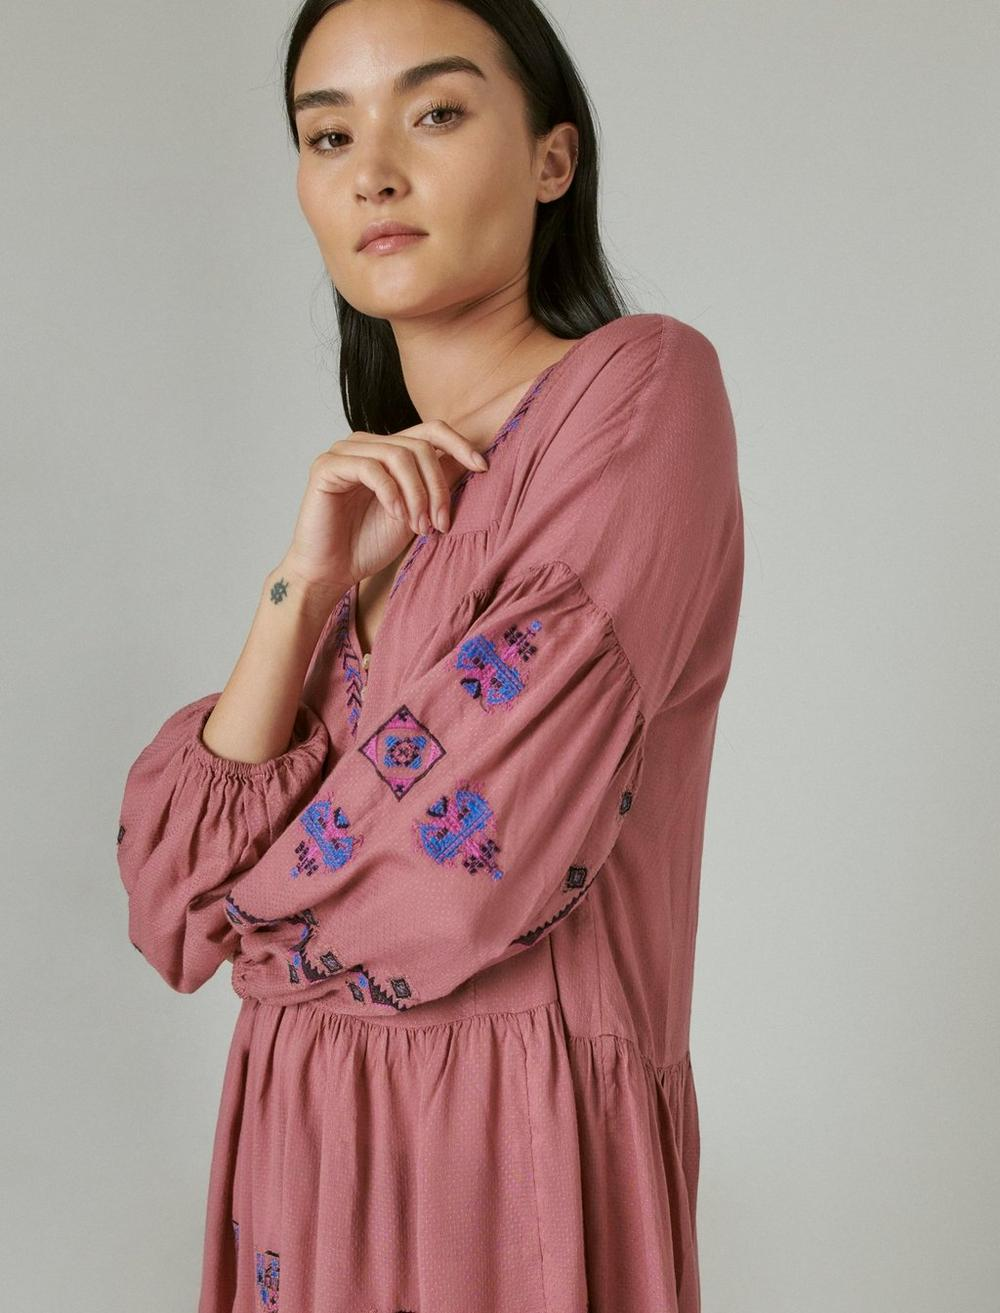 EMBROIDERED TIERED DRESS, image 5